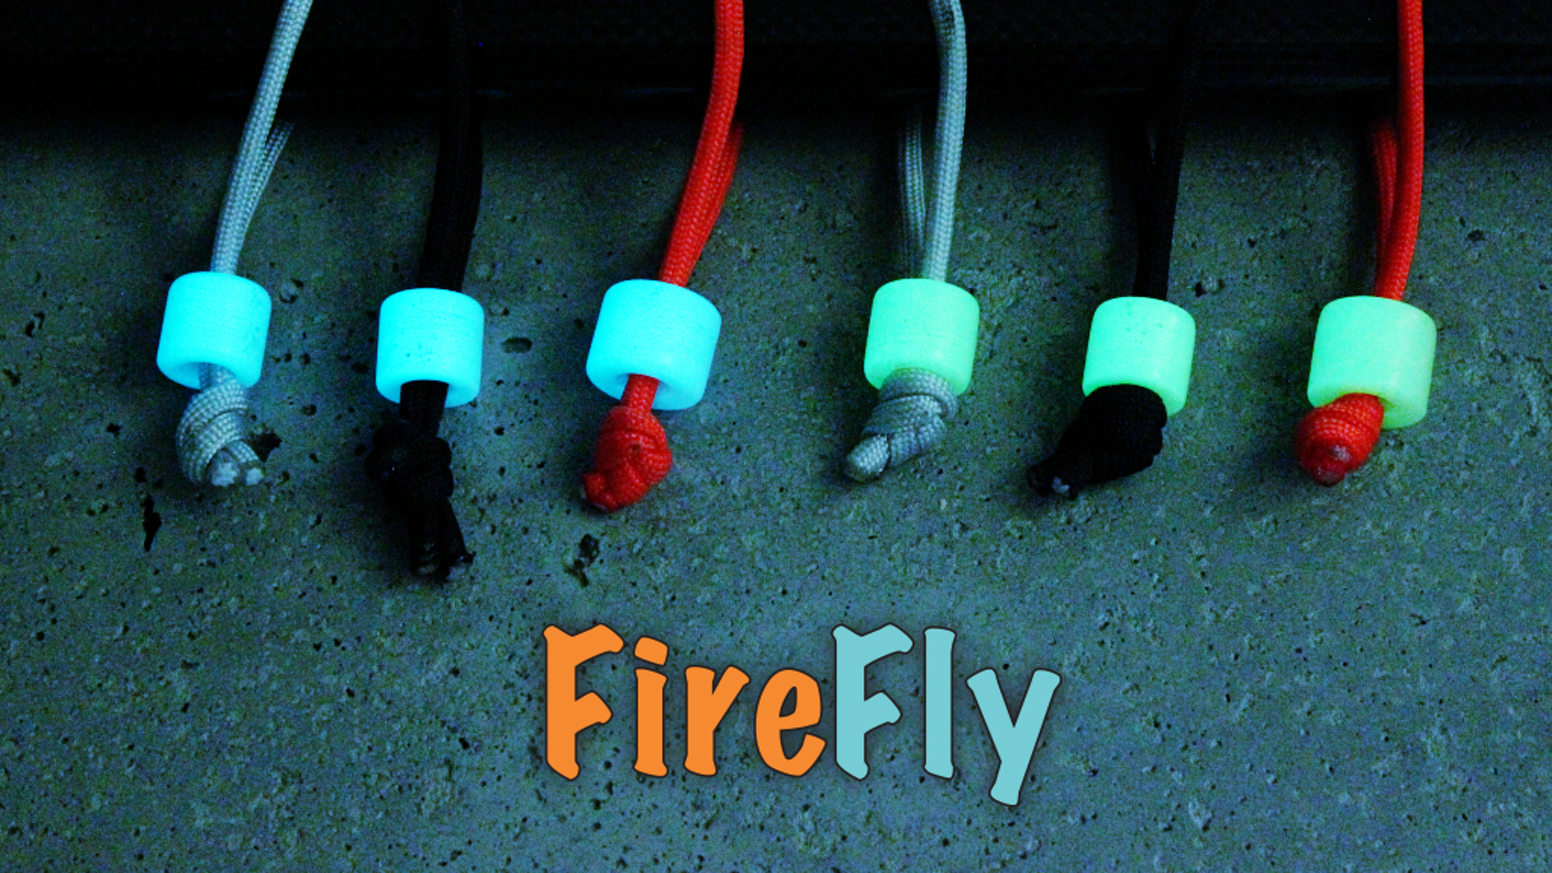 FIREFLY | Glowing zipper pull, key chain, and more... by RUNE ...